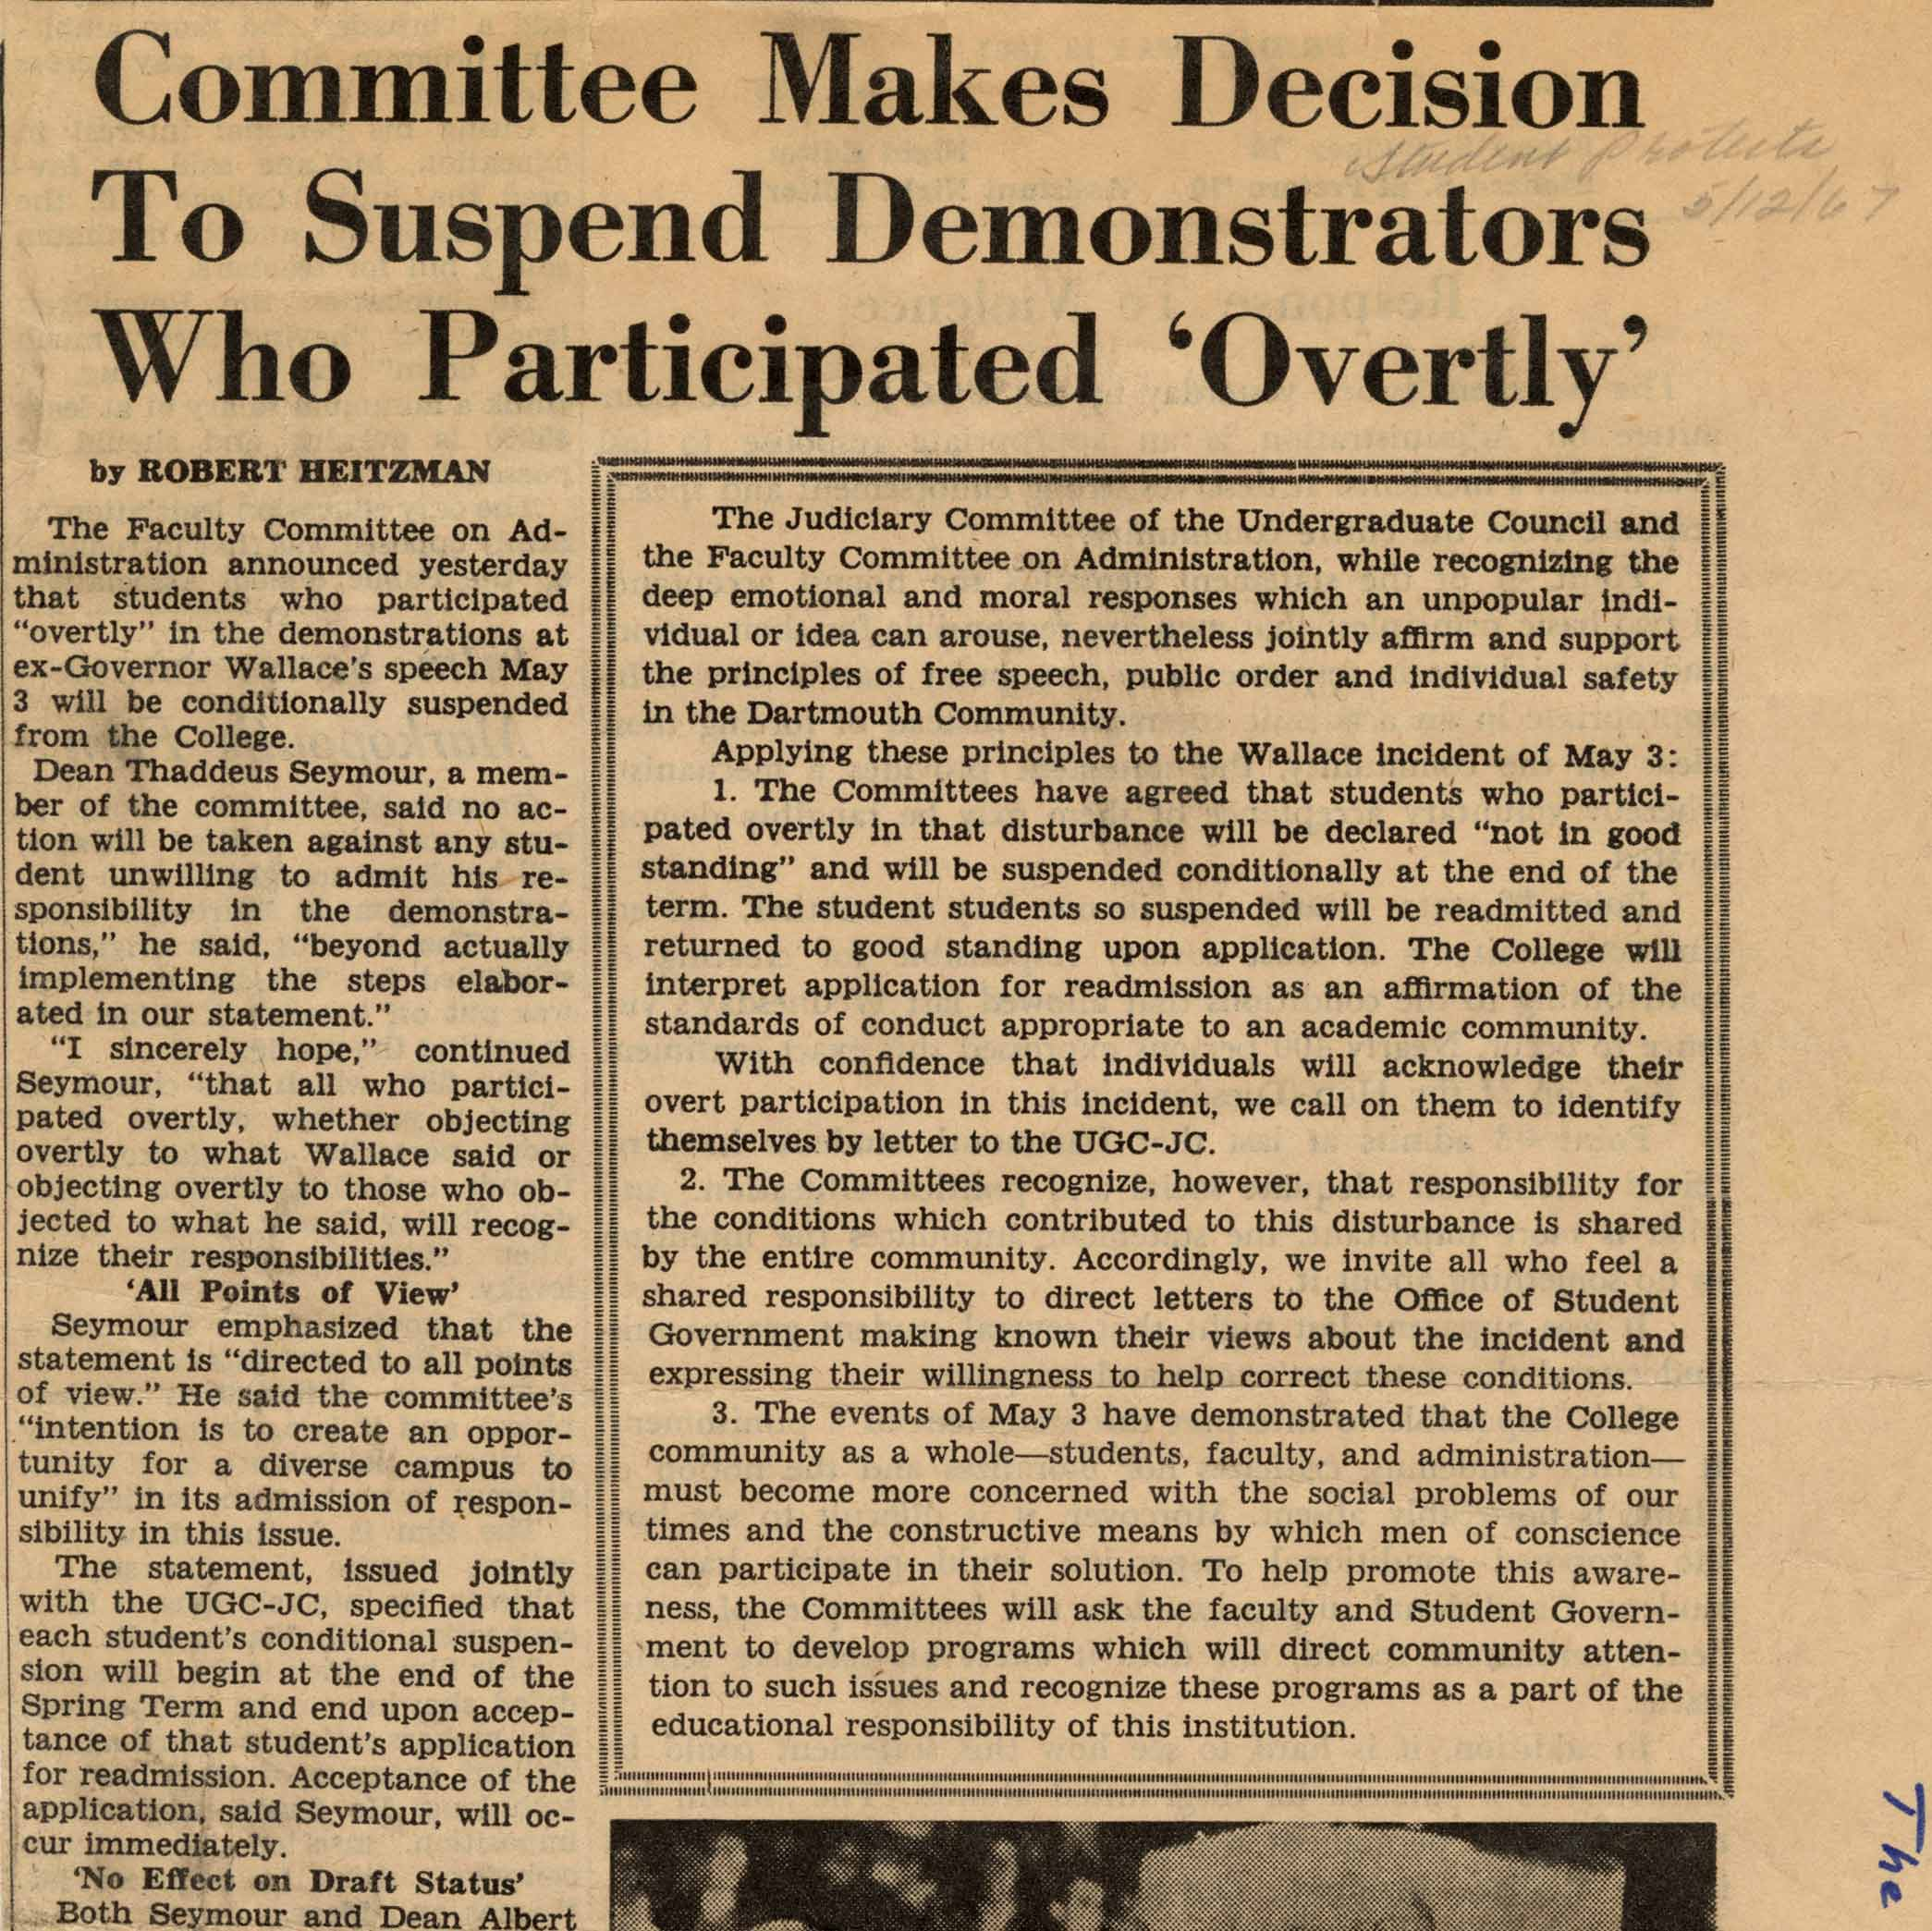 "This article by Robert Heitzman details the Faculty Committee on Administration's decision to conditionally suspend Dartmouth students who participated 'overtly' in the demonstration against George Wallace's speech in Webster Hall. In addition to hoping students who demonstrated would come forward to admit their involvement, the article remarks that the Committee recognized that ""responsibility for the conditions which contributed to this disturbance is shared by the entire community. Accordingly, we invite all who feel shared responsibility to direct letters to the Office of Student Government making known their views..."" Dean Thaddeus Seymour hoped such actions would ""create an opportunity for a diverse campus to unify."""